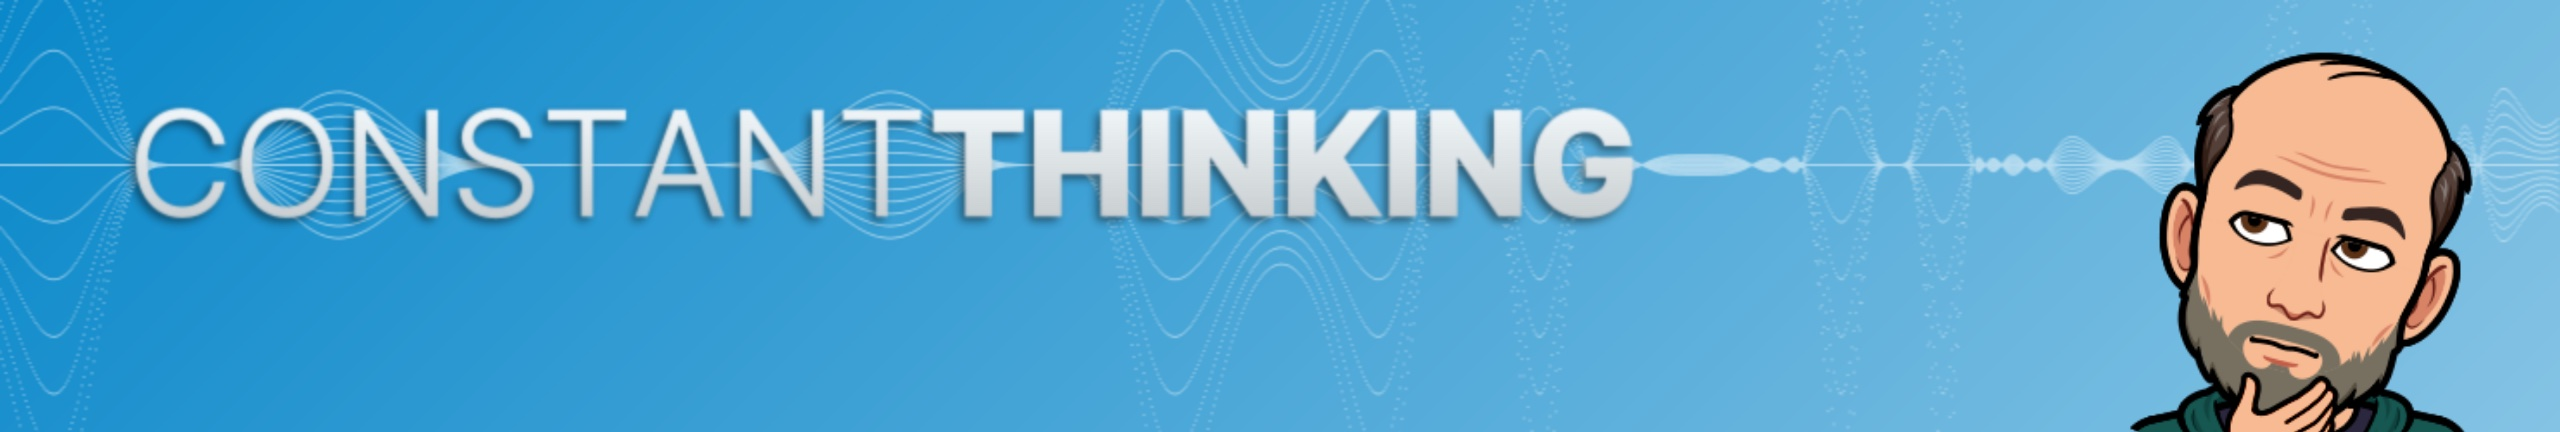 Constant Thinking | Technology Thoughts for the Quality Geek | by Constantin Gonzalez